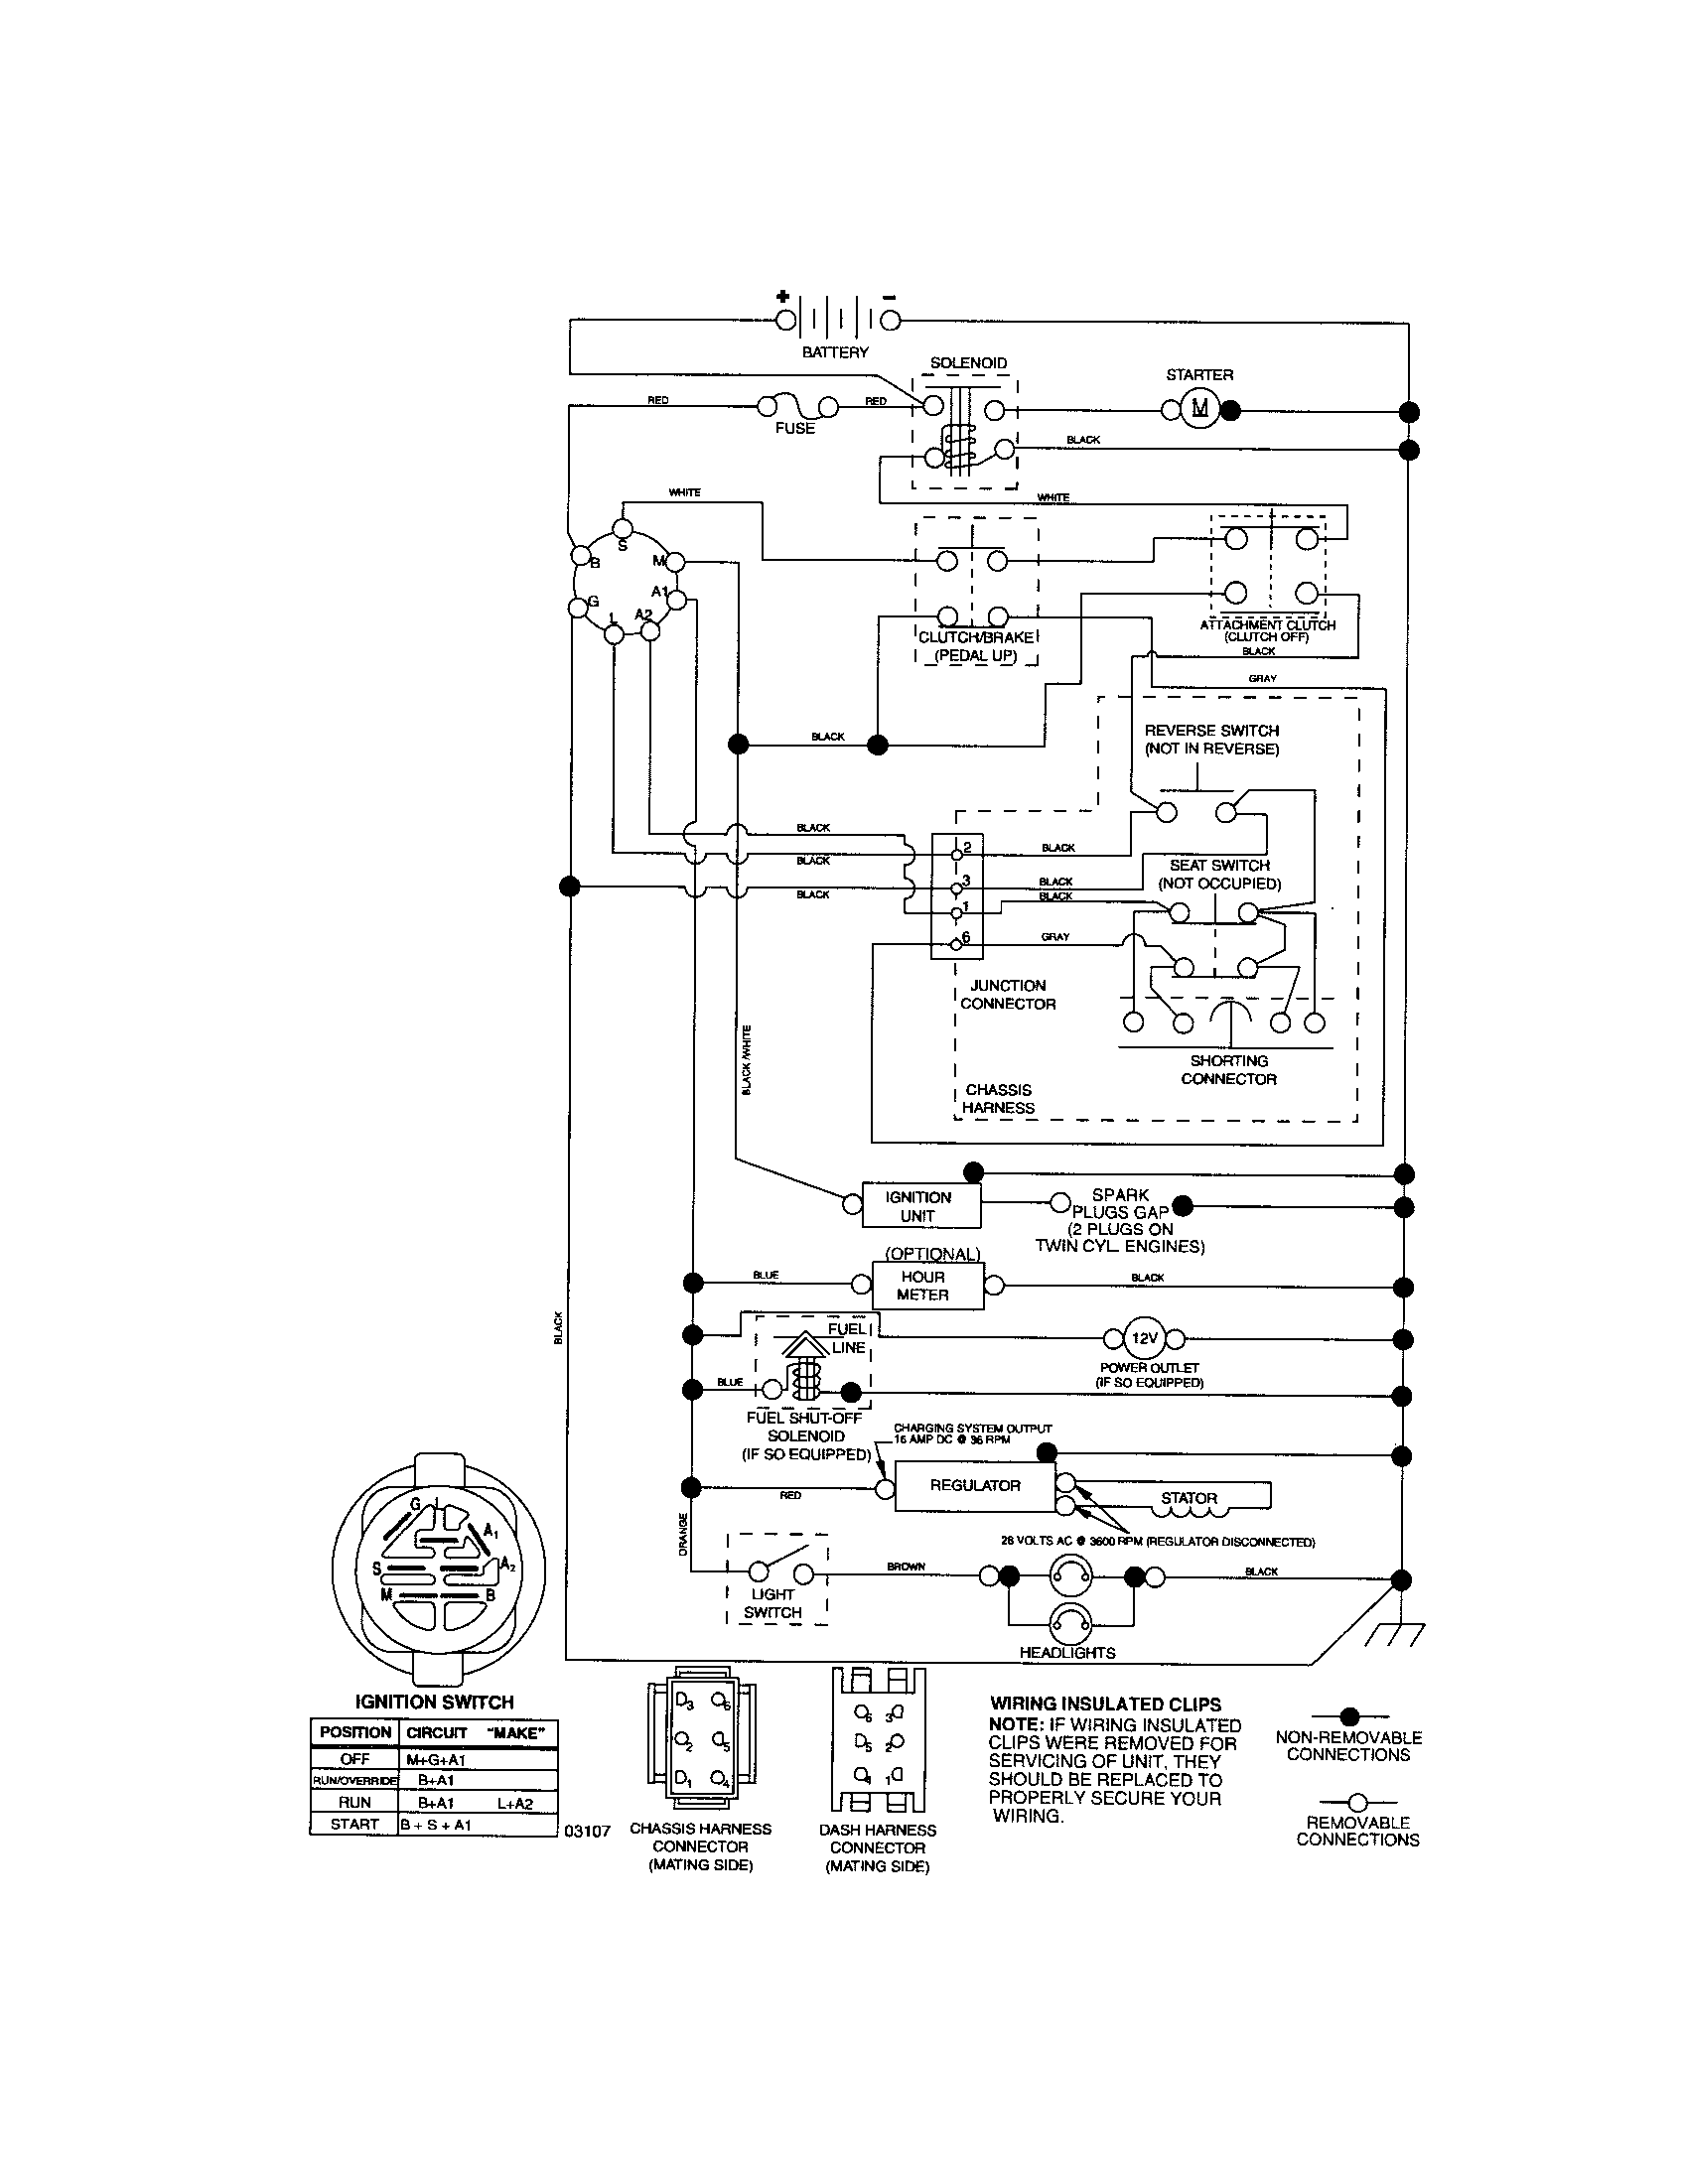 6af5f1447fd13c8443376822ddc1e105 craftsman riding mower electrical diagram wiring diagram tractor ignition switch wiring diagram at soozxer.org